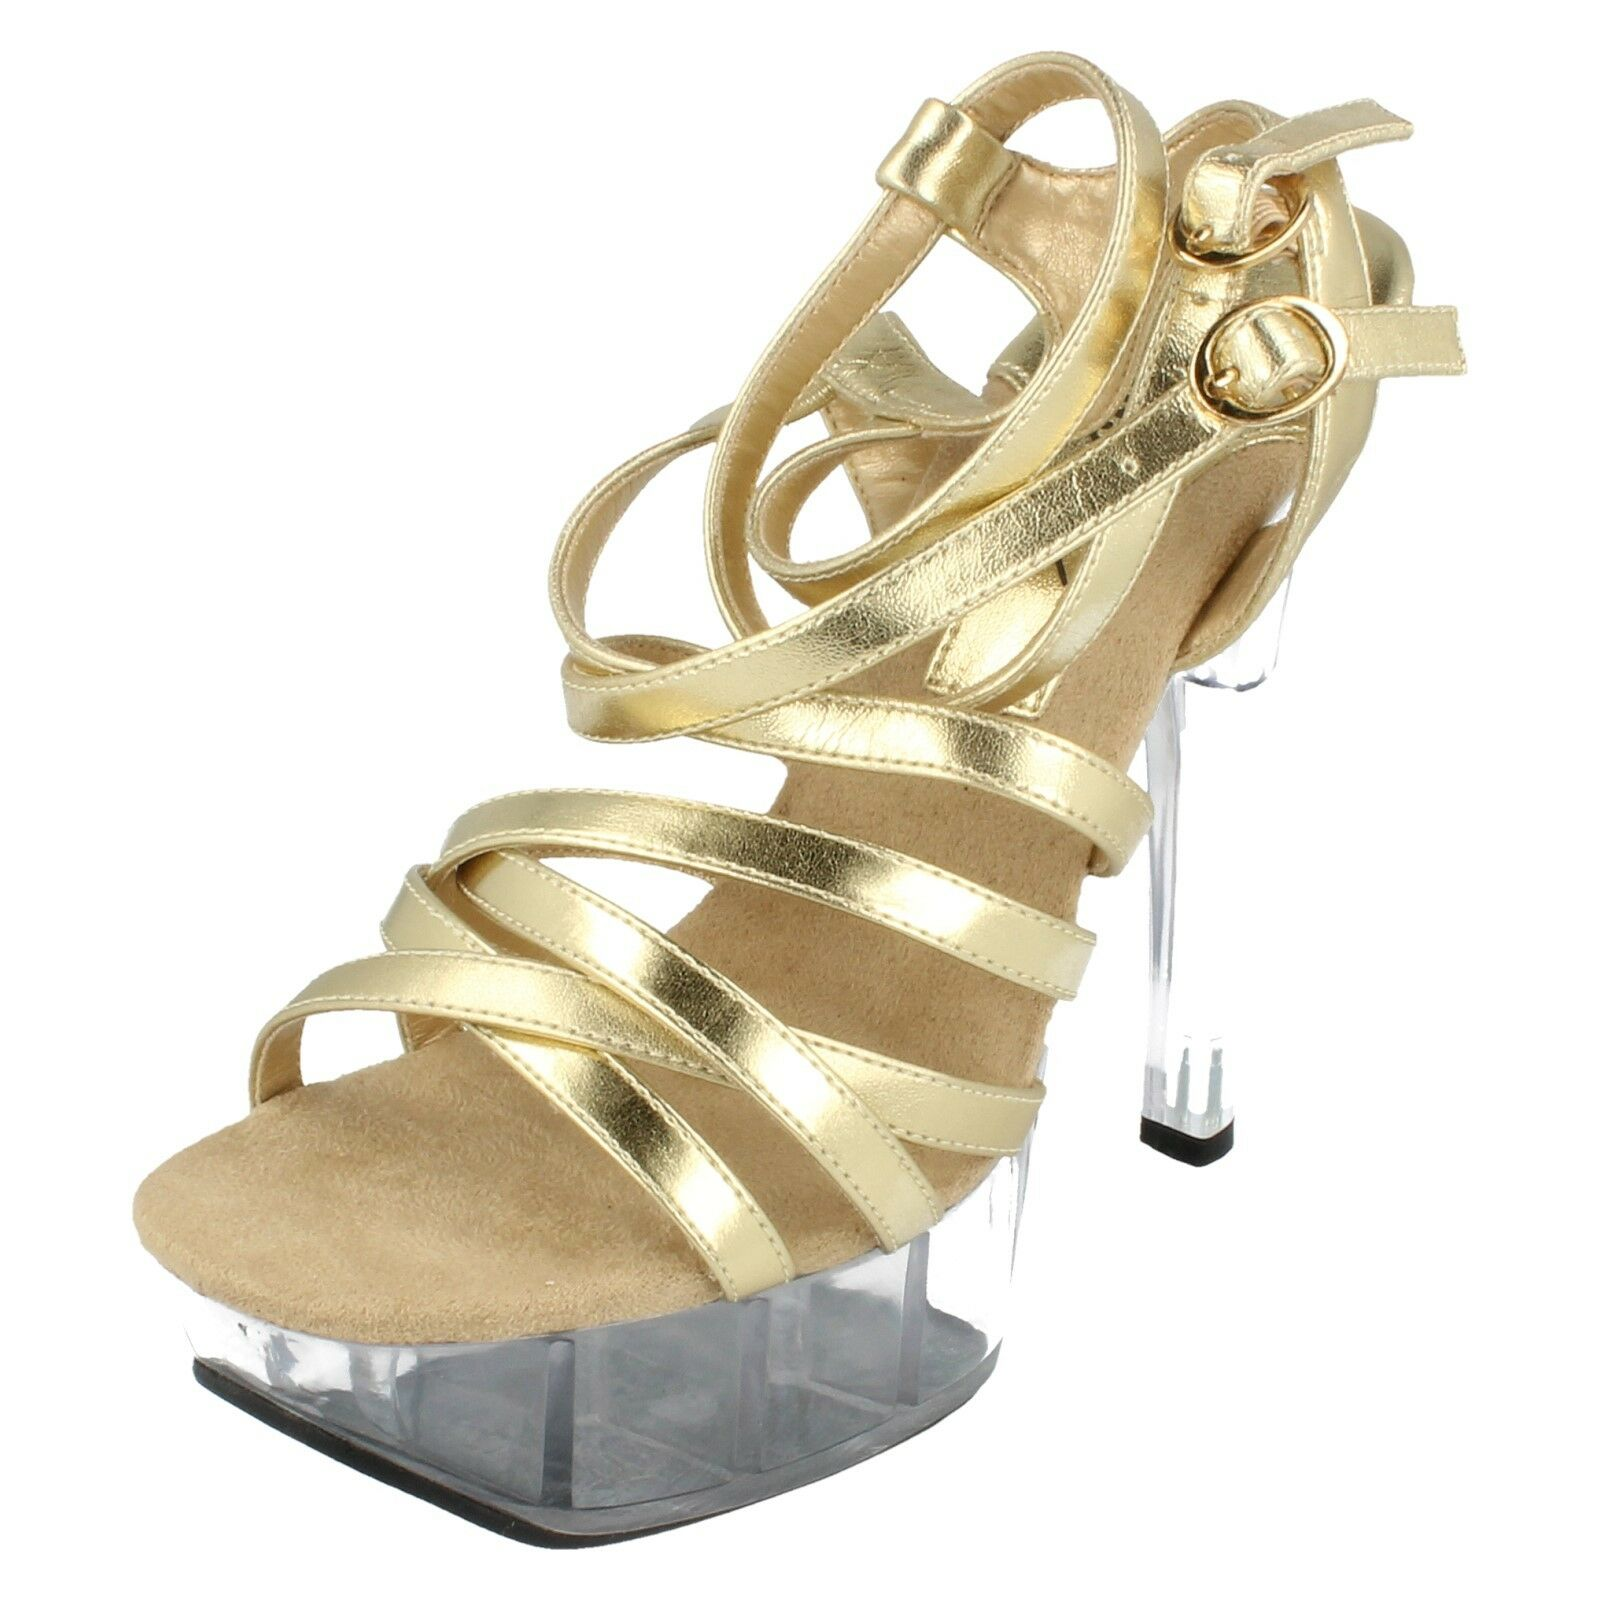 Moda jest prosta i niedroga Ladies 66048 gold/bronze heel sandals by miss Retail price